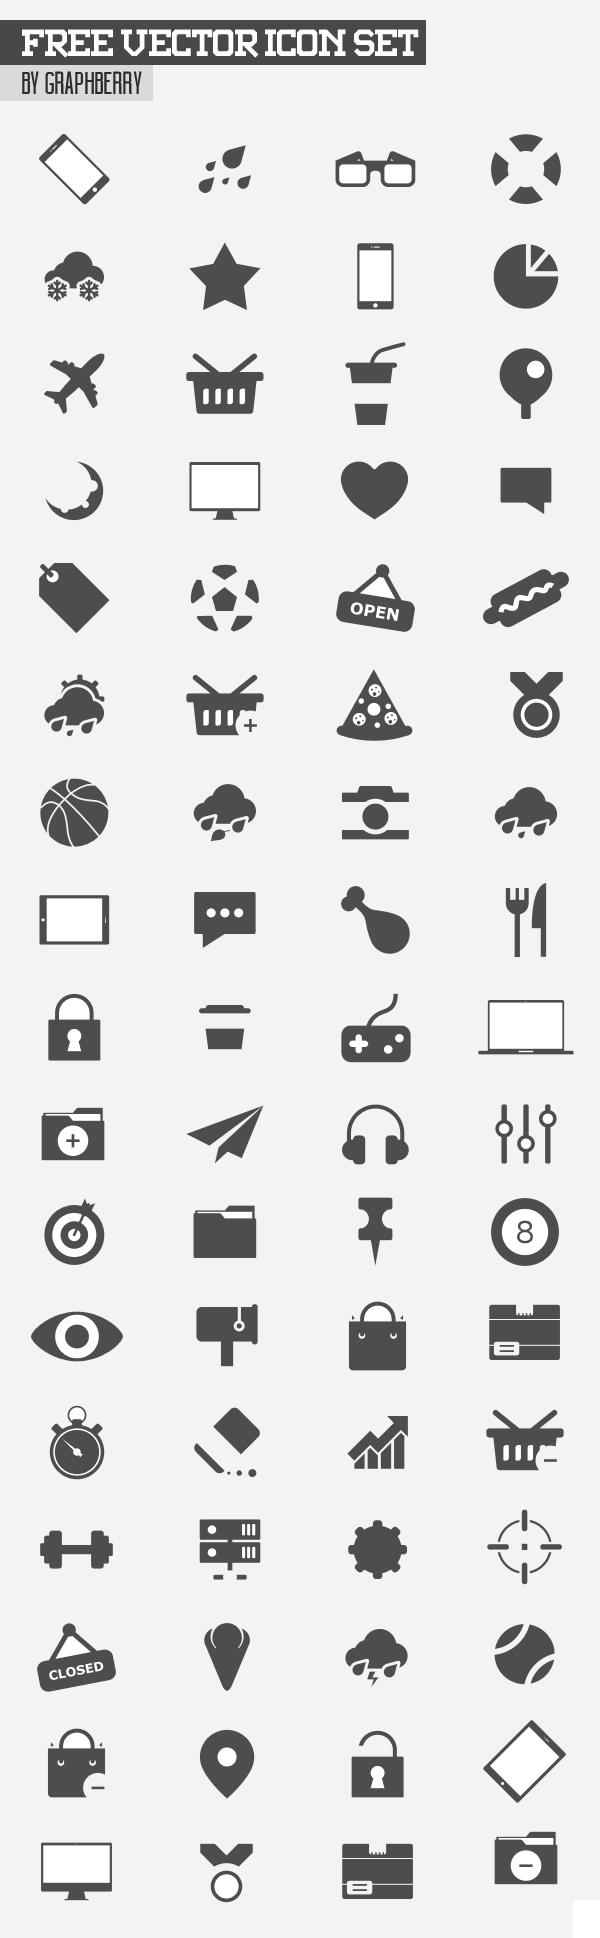 Free Vector Icon Set - 80+ Icons